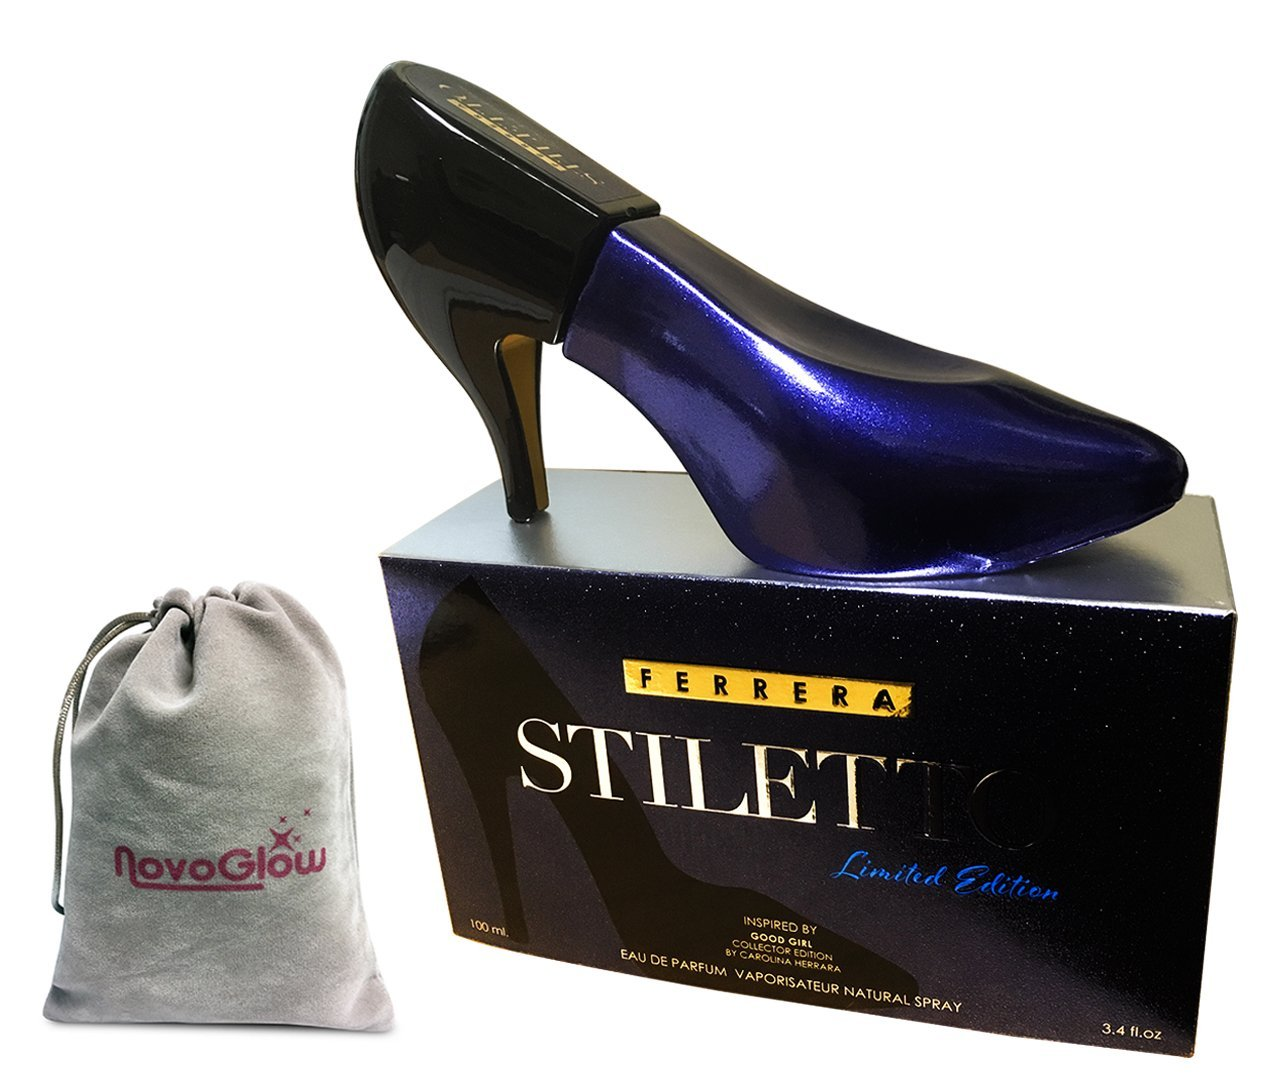 Ferrera Stiletto - Limited Edition, 3.4 oz, by Mirage Brands - Inspired by Good